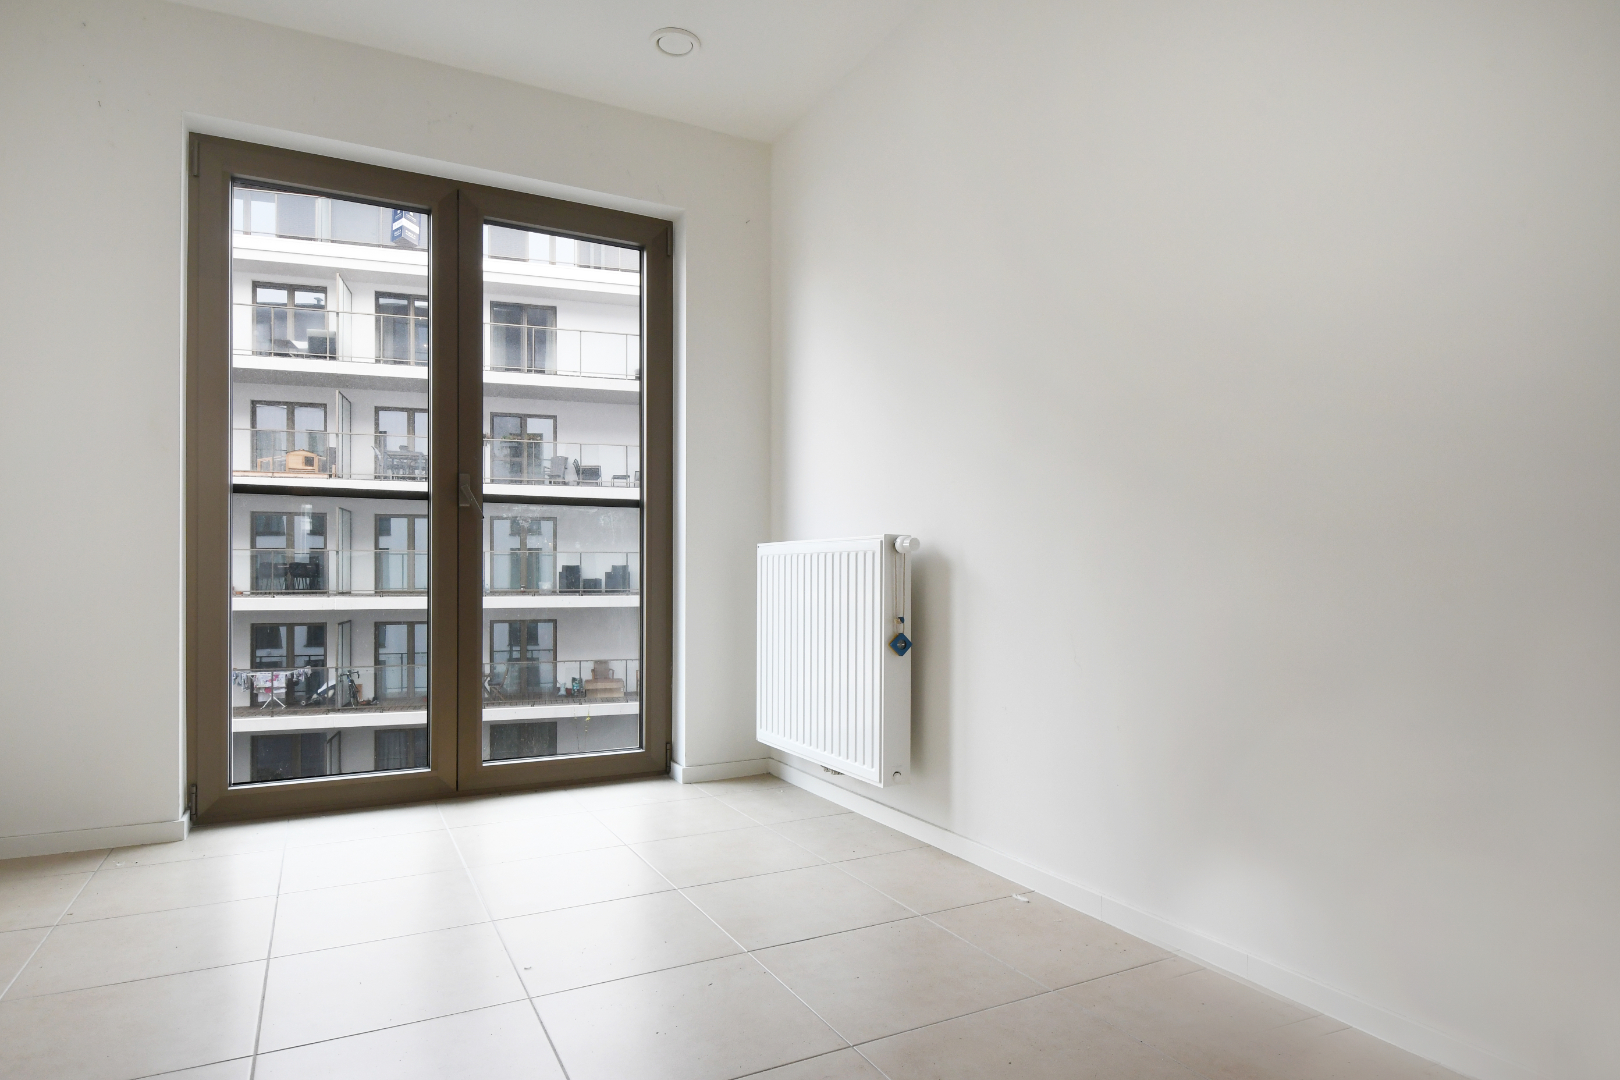 FOR RENT AT LANDBERGH: apartmet in Ghent